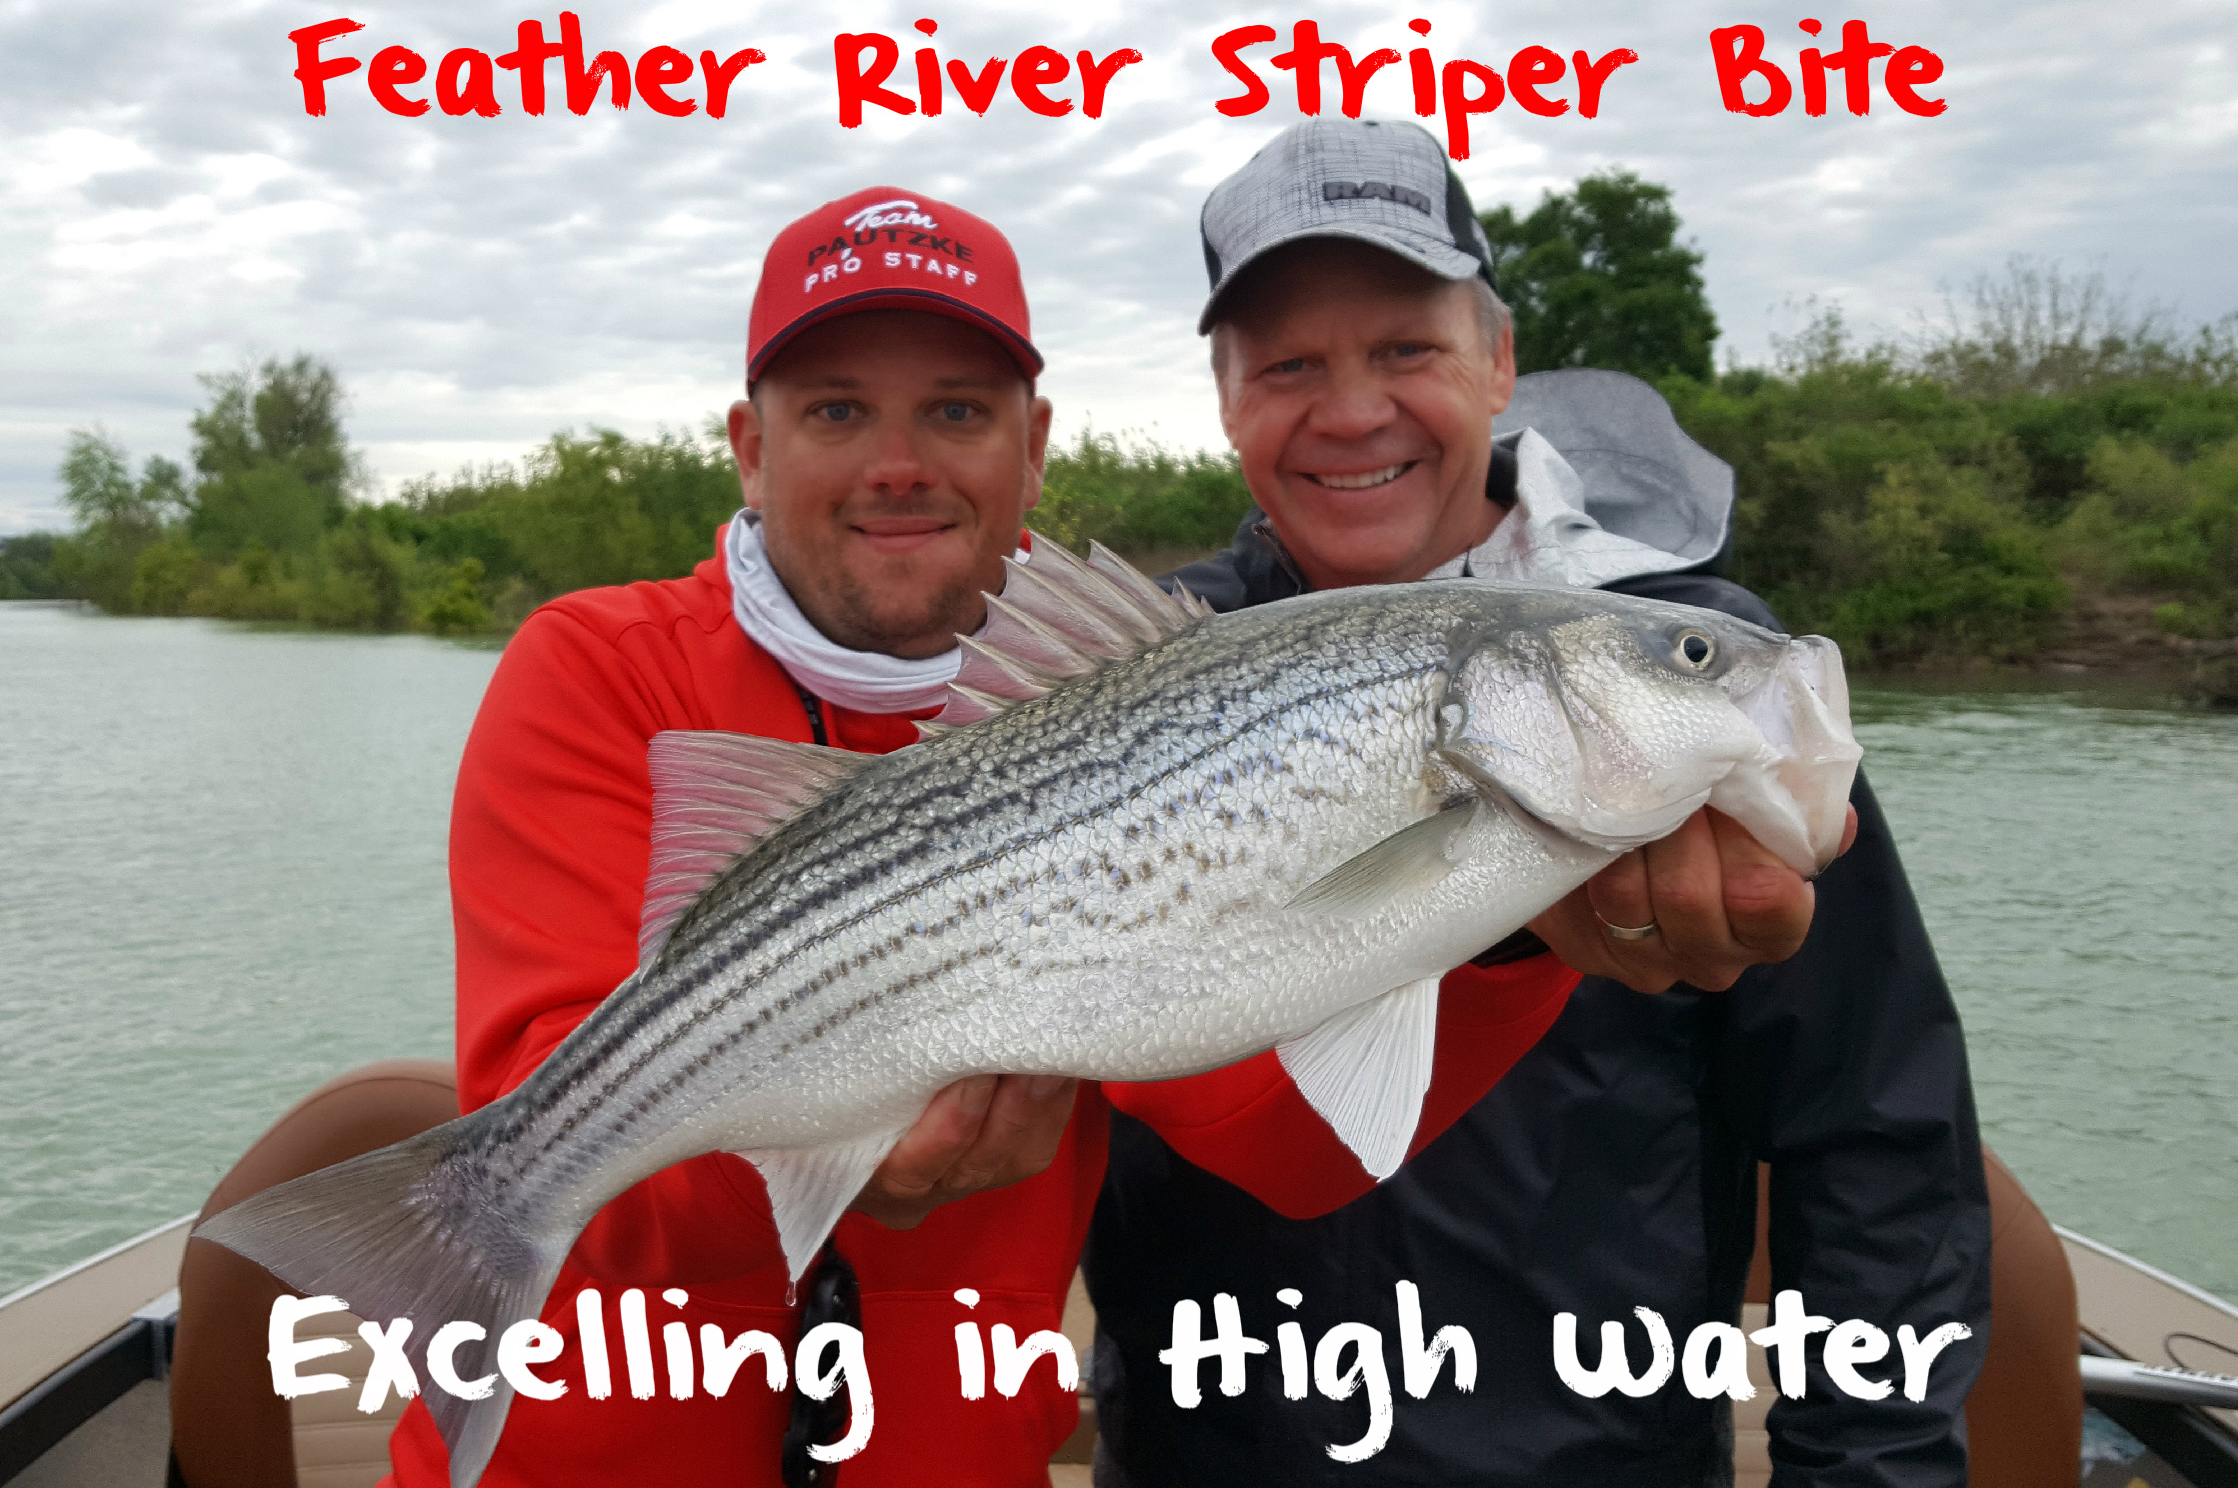 Feather River Striper Bite Excelling in High Water – Pautzke Bait Co